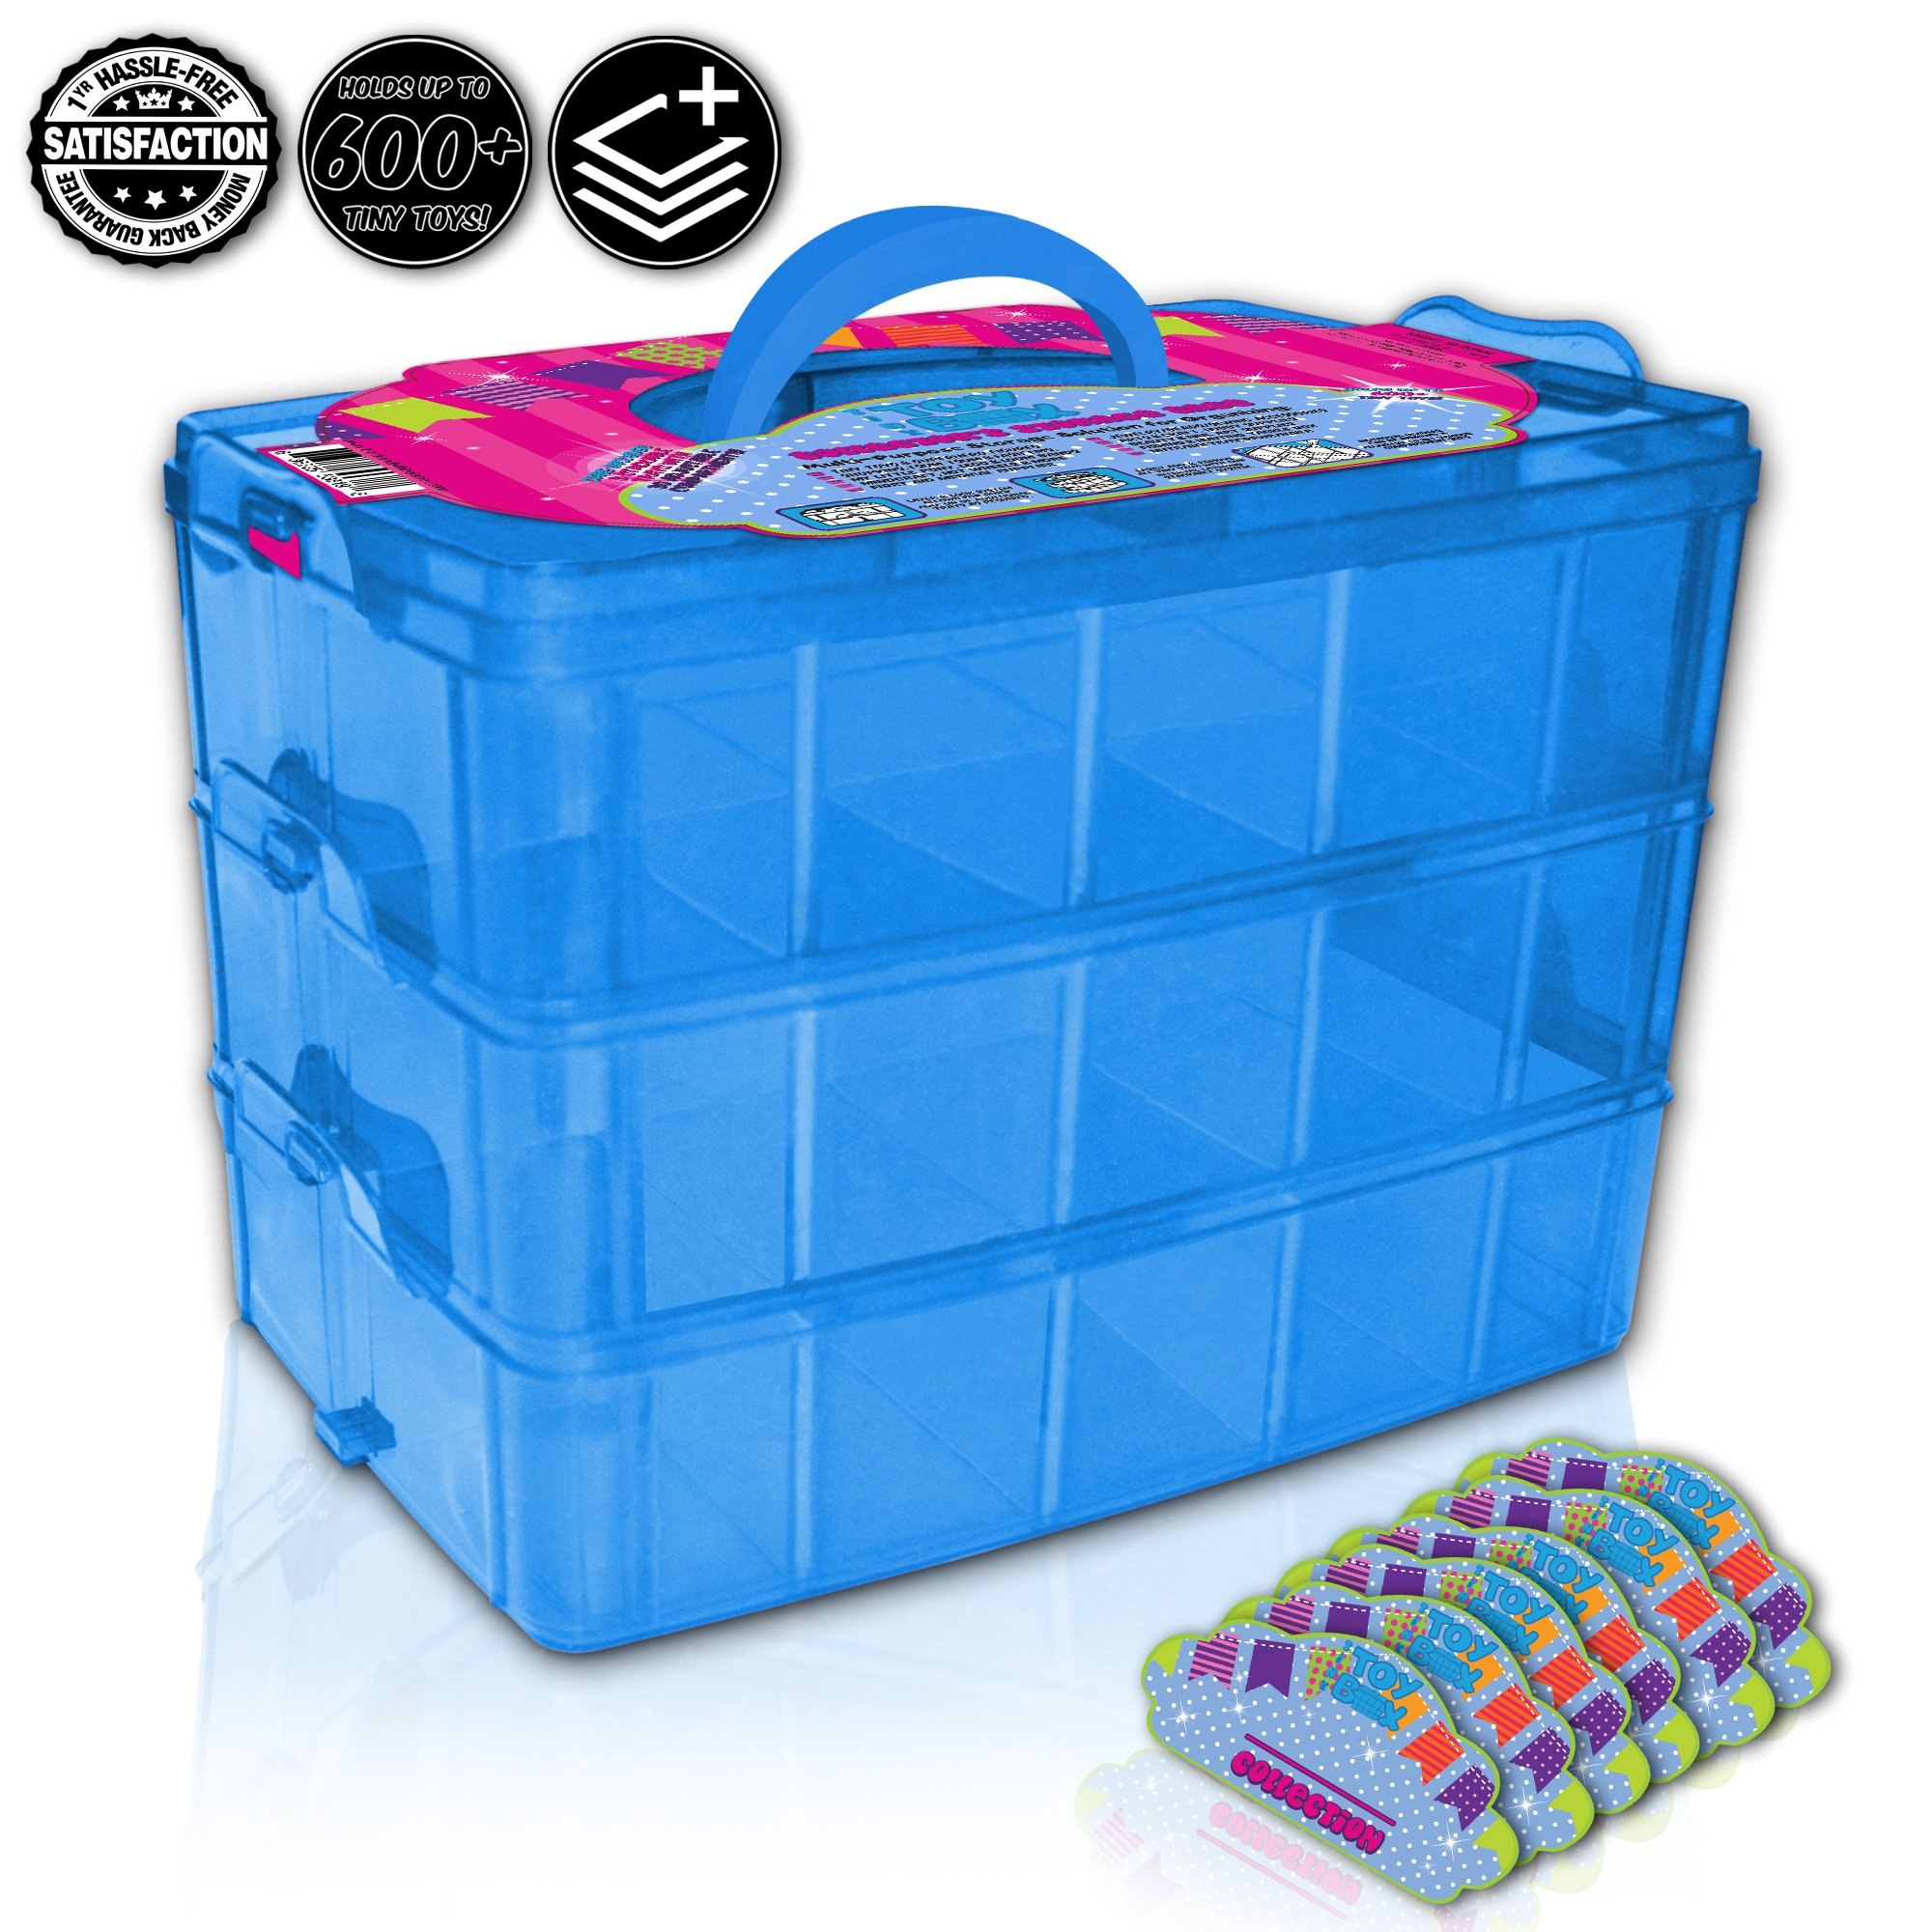 Holds 600 - Tiny Toy Box Shopkins Storage Case Organizer Container - Stackable Collectors Carrying Tote - Compatible W/ Mini Toys Colleggtibles Tsum Tsum LoL Hot Wheels (Blue)